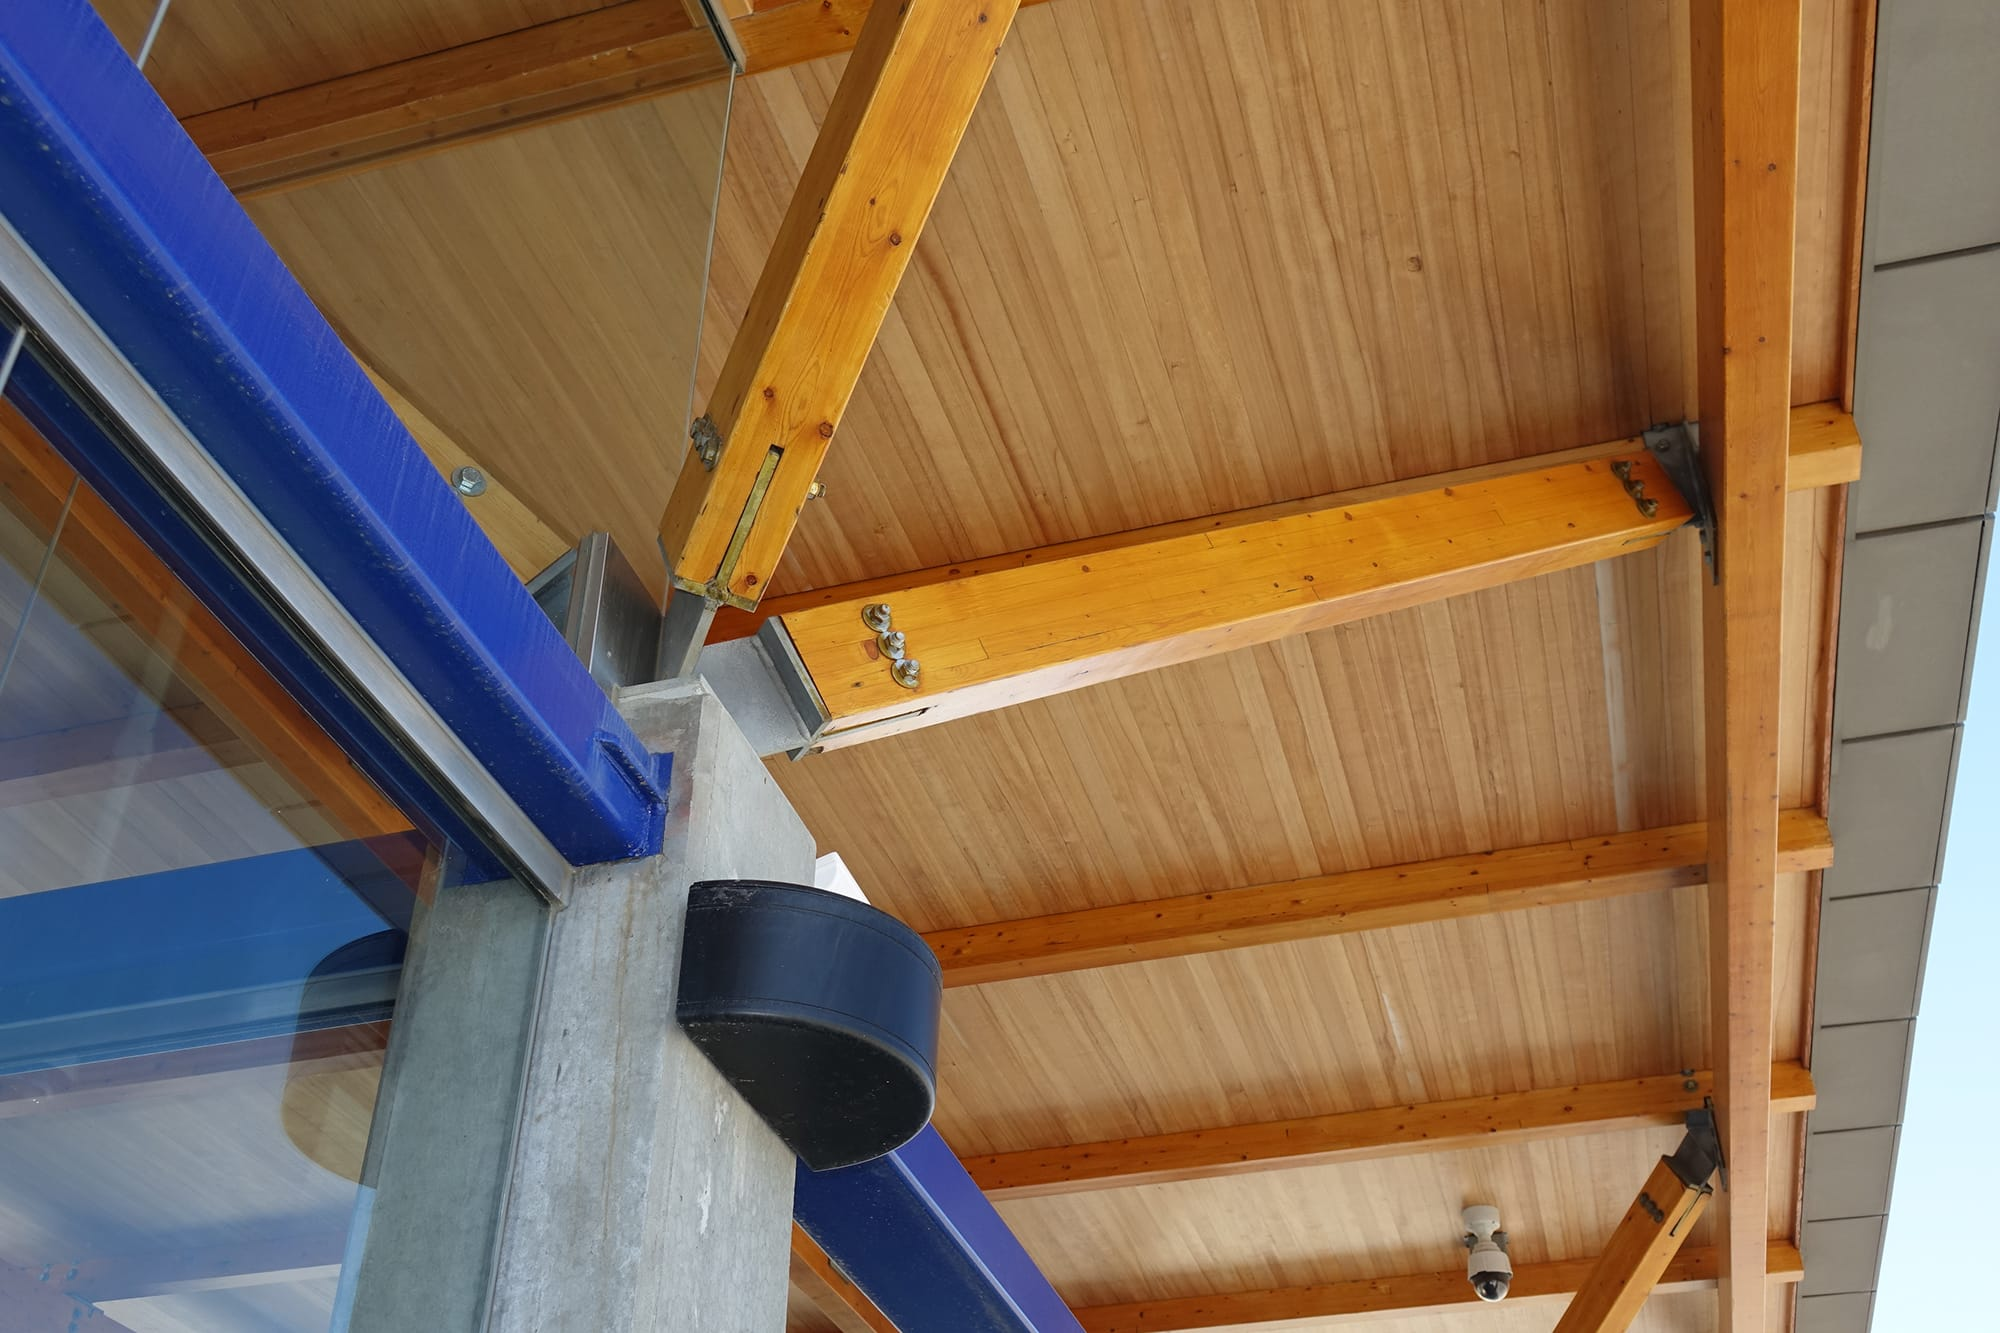 Lewis Farms Transit Centre ceiling